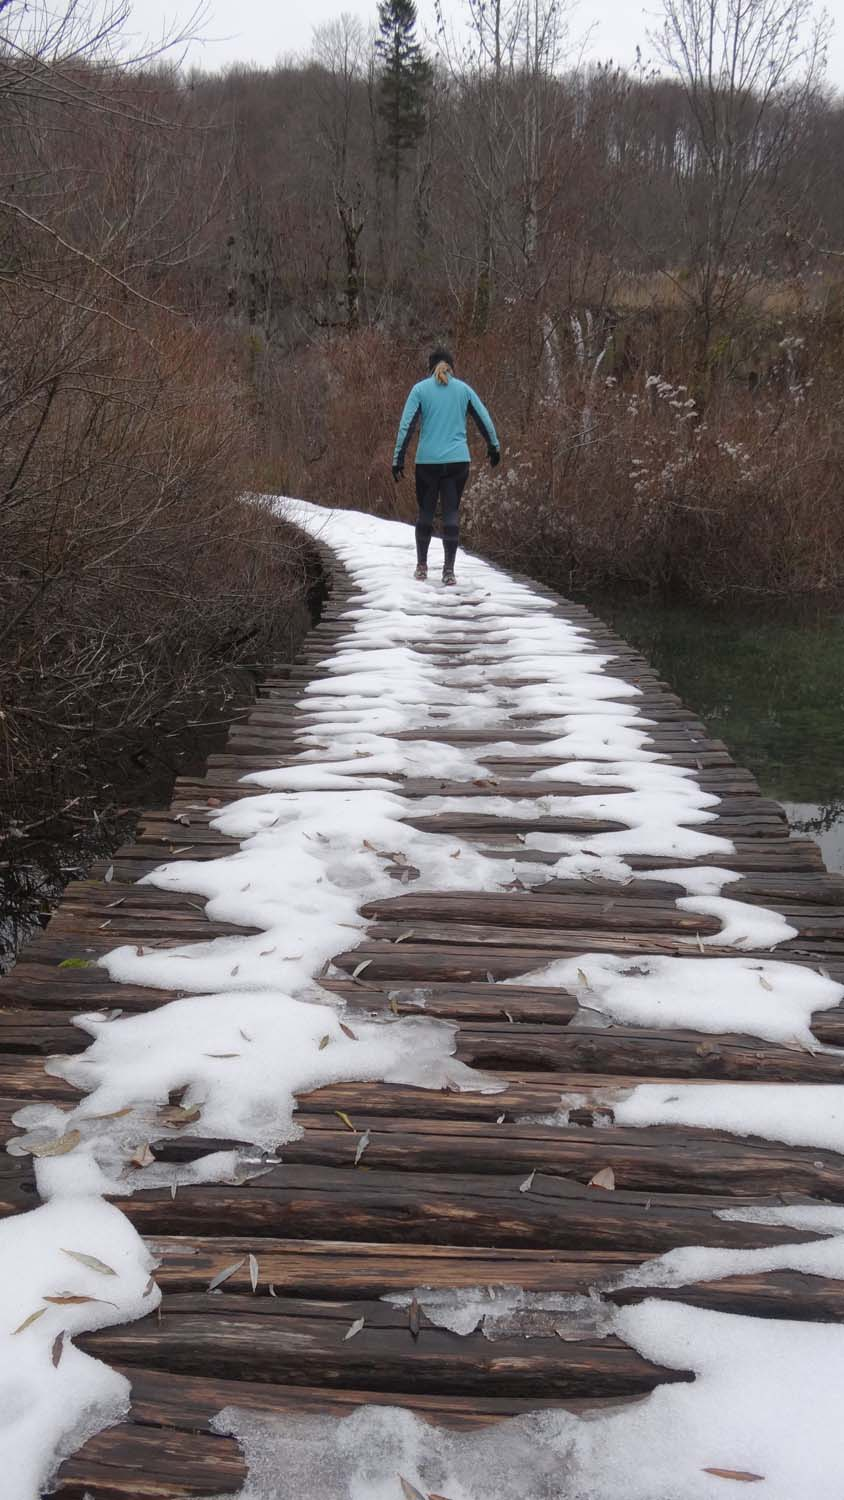 some snow on the boardwalks makes for interesting walks around the lakes